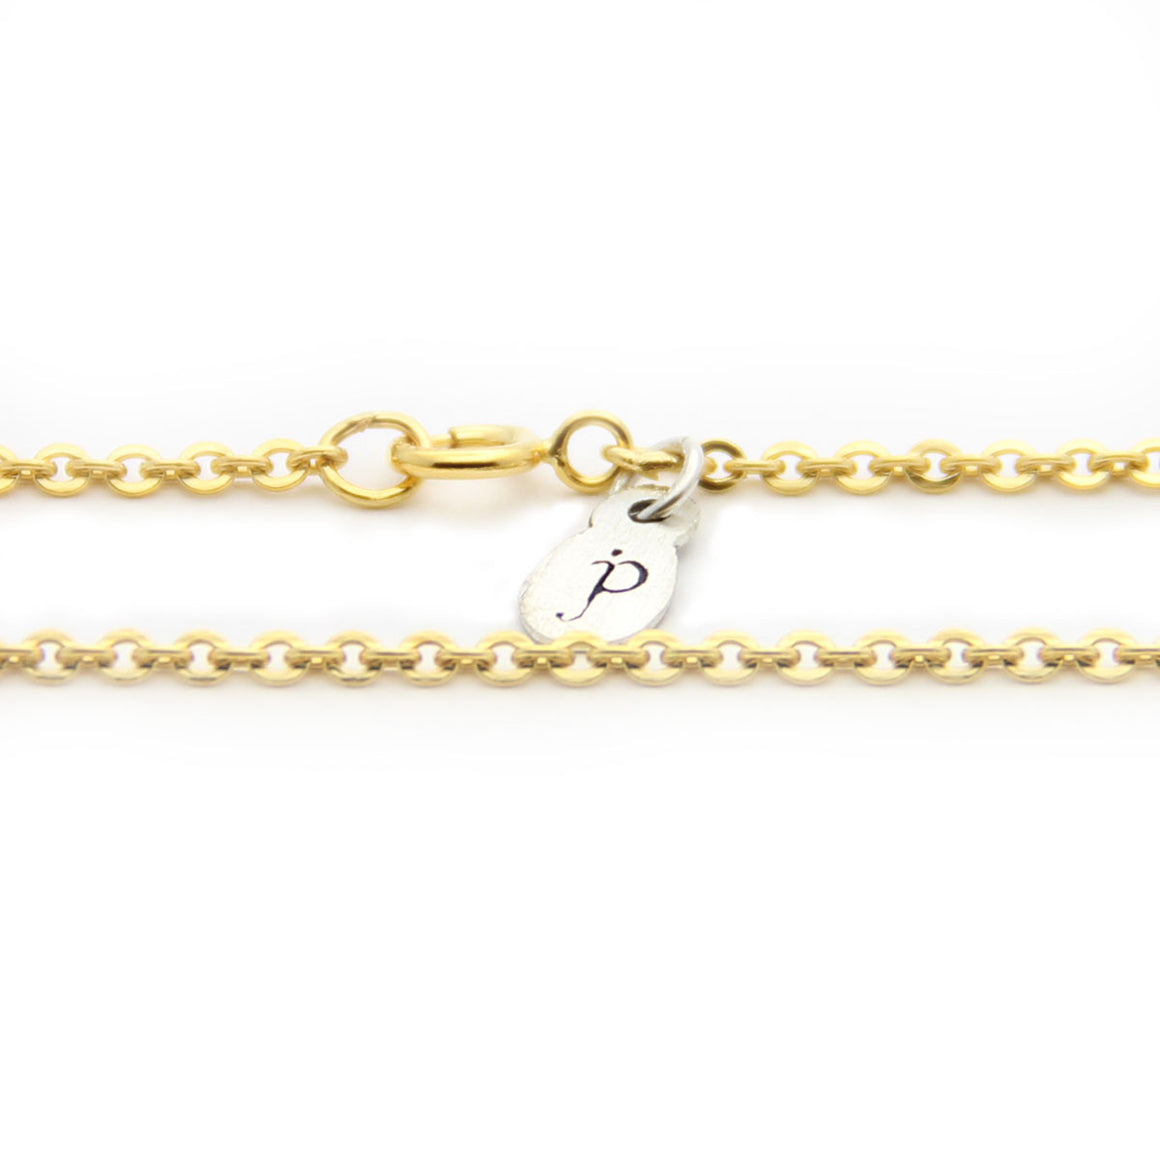 gold cable chain necklace, cable chain length options, add on necklace, personalized, jenny present®